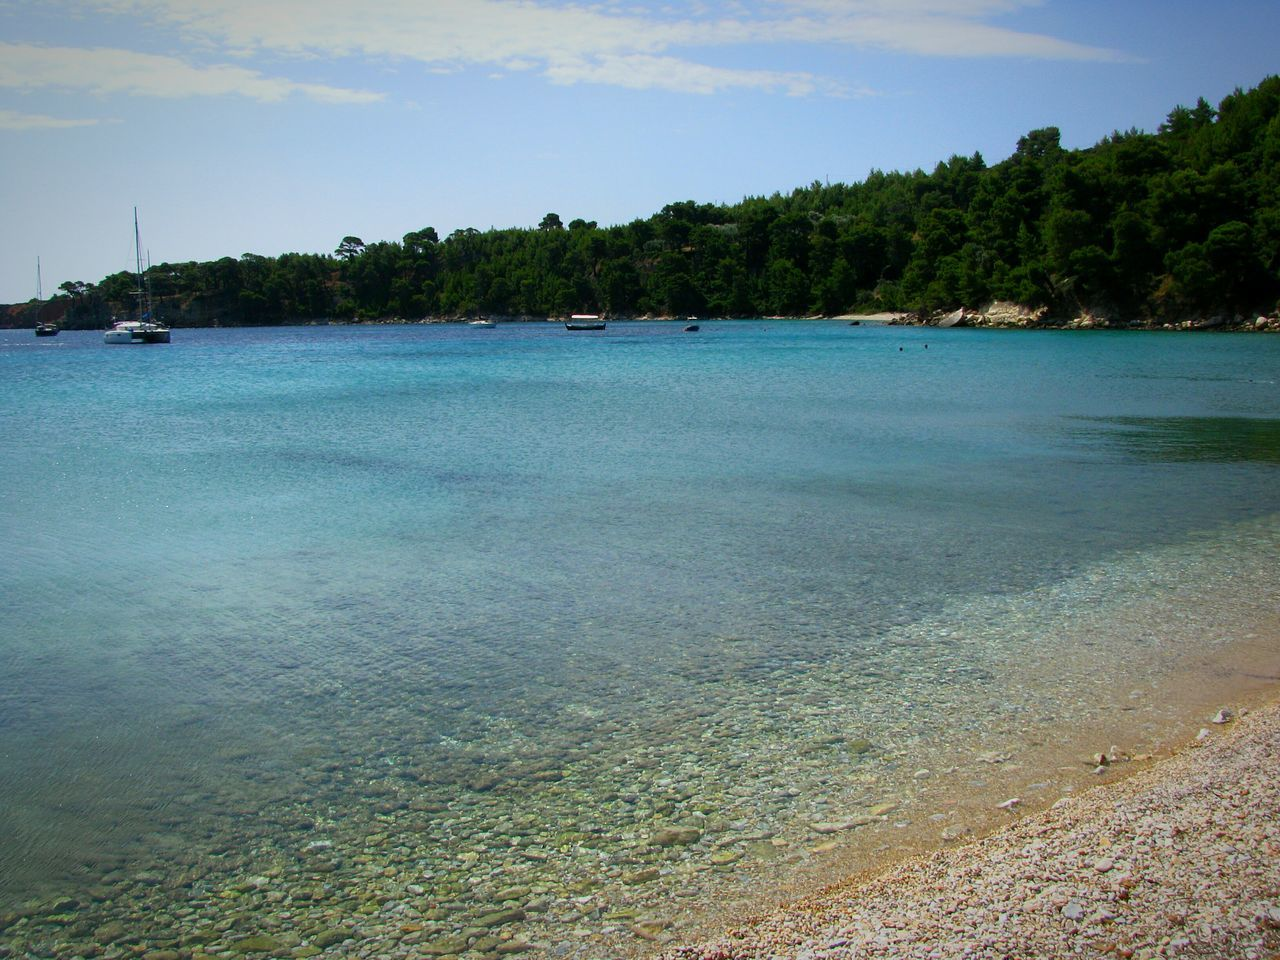 Beach Beach Photography Life Is A Beach Alonnisos Island Greek Islands Water Tranquil Scene Scenics Tranquility Boat Nature Beauty In Nature Non-urban Scene Sea Boats Calm Sea Crystal Clear Waters Blues Shades Of Blue Blue Sea Seascape Landscapes